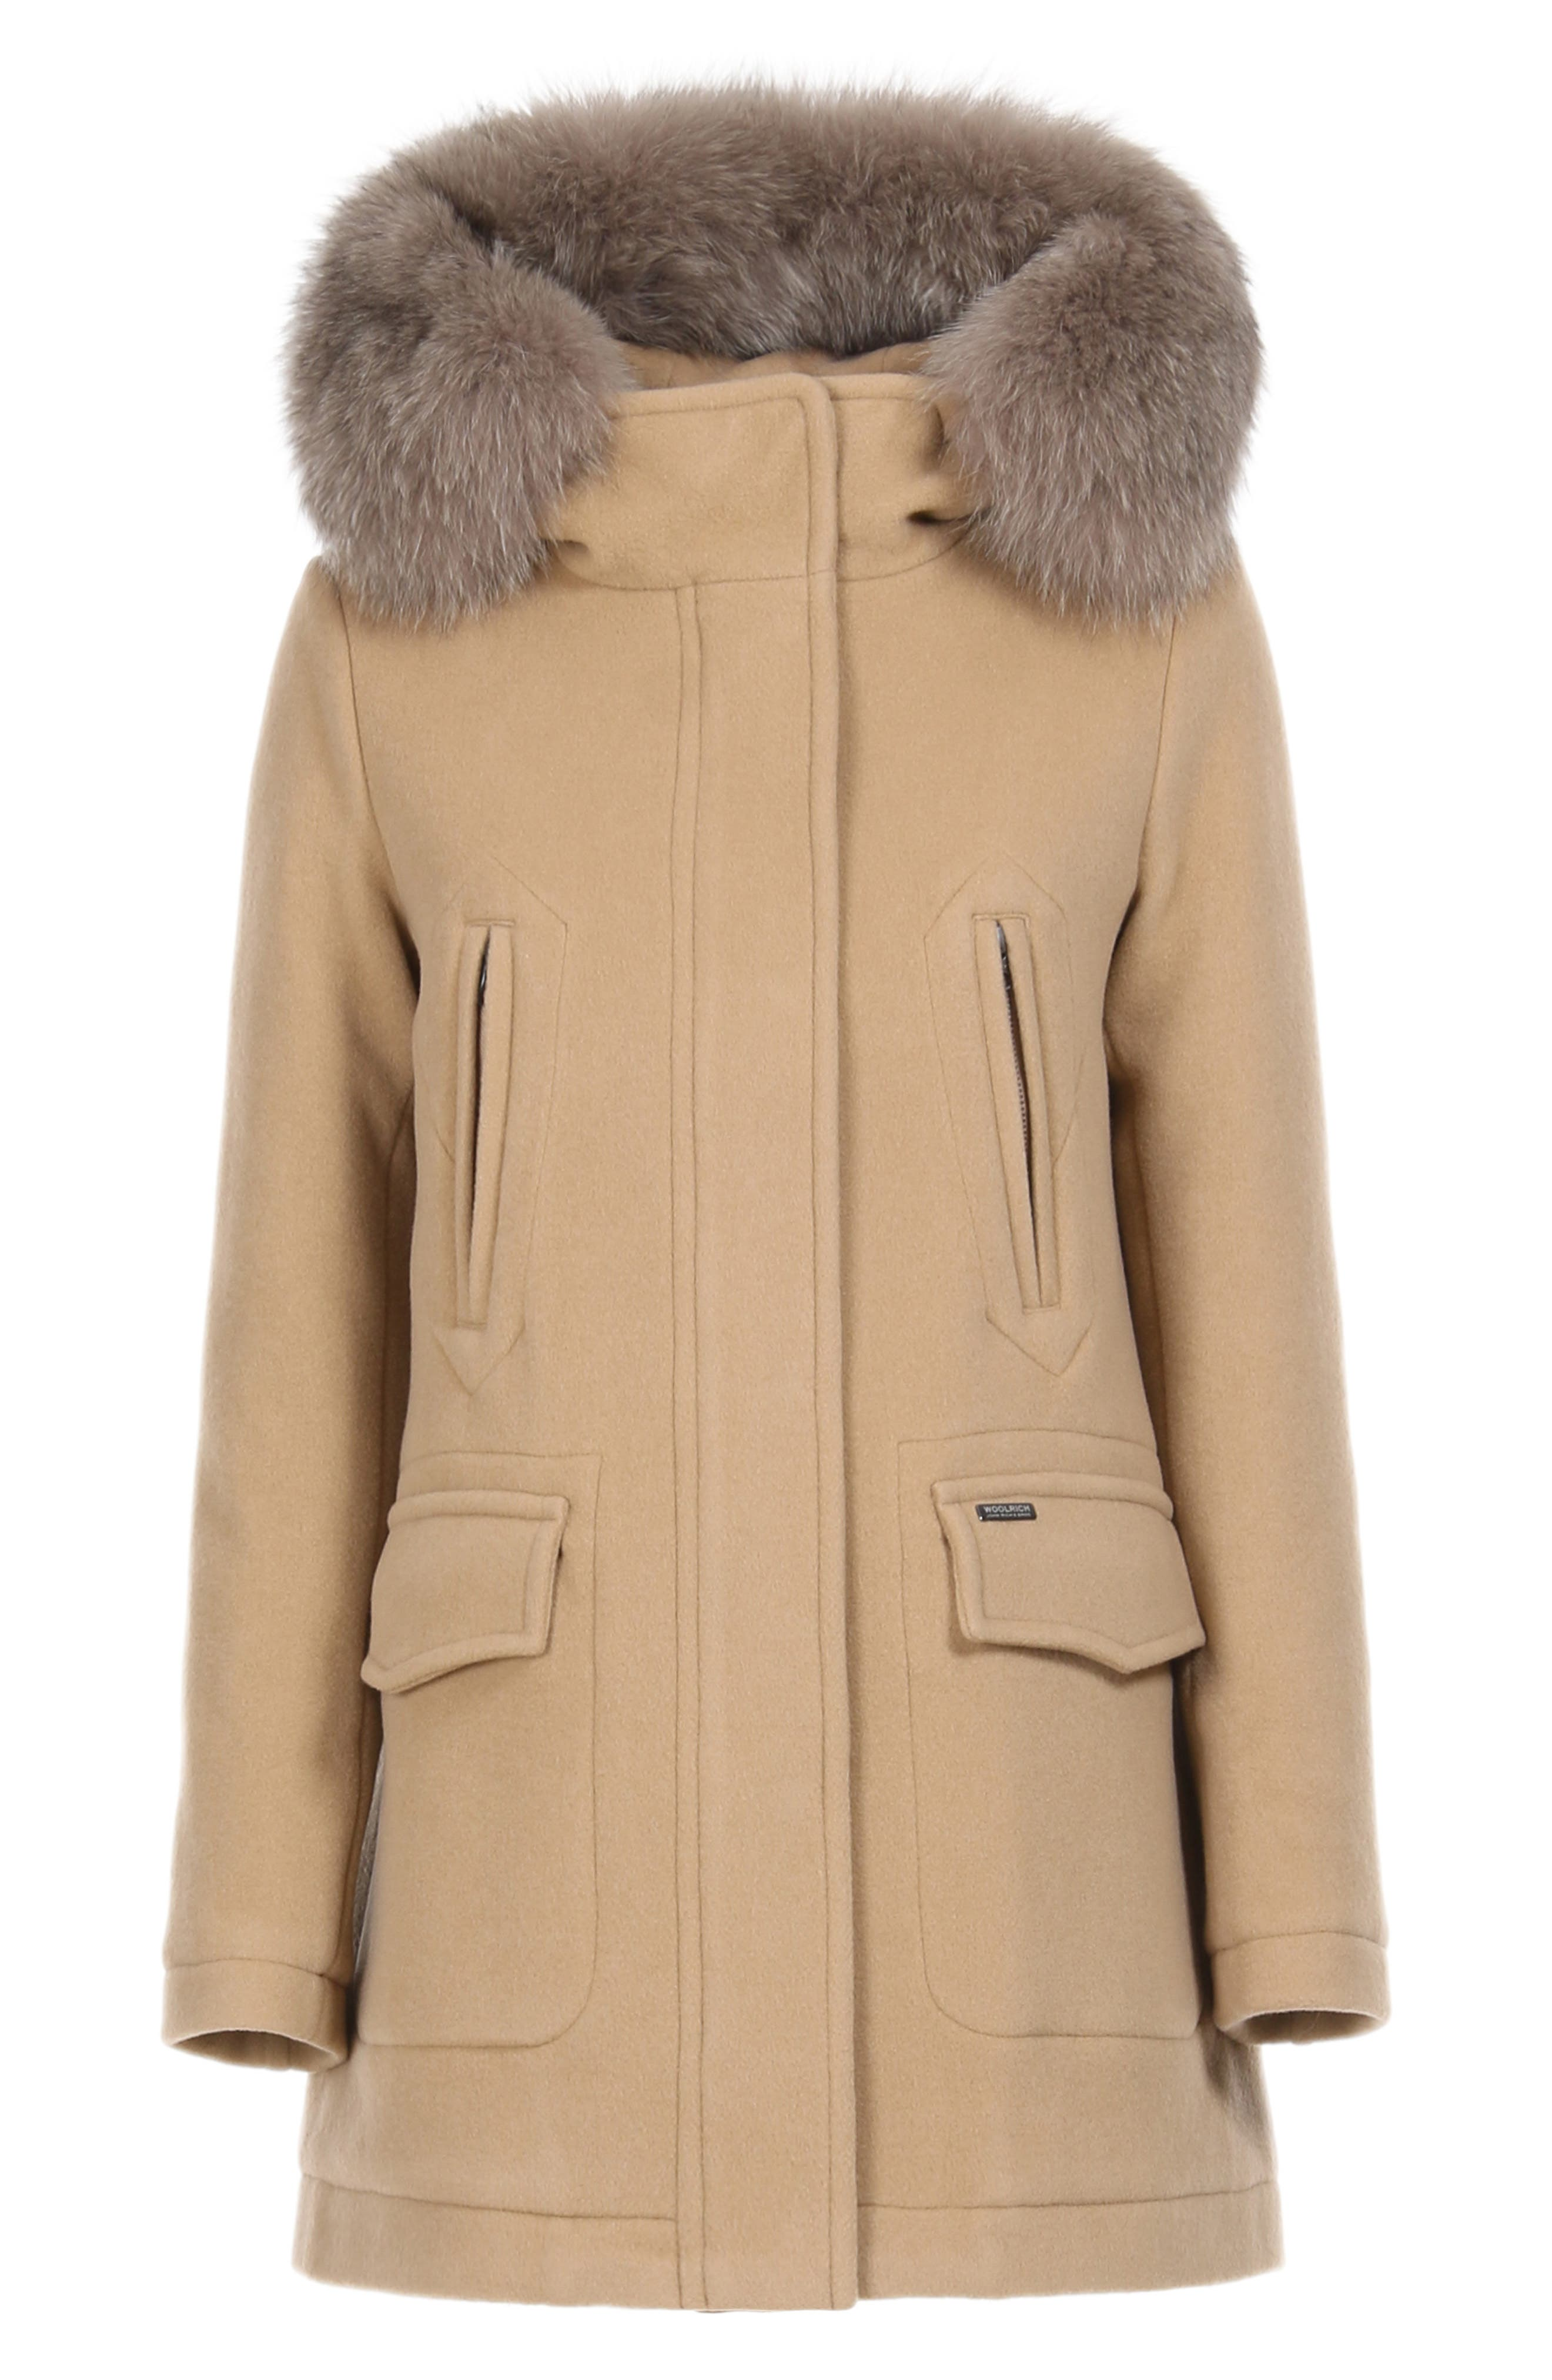 McKenzie Coat with Genuine Fox Fur Trim,                             Alternate thumbnail 7, color,                             CAMEL